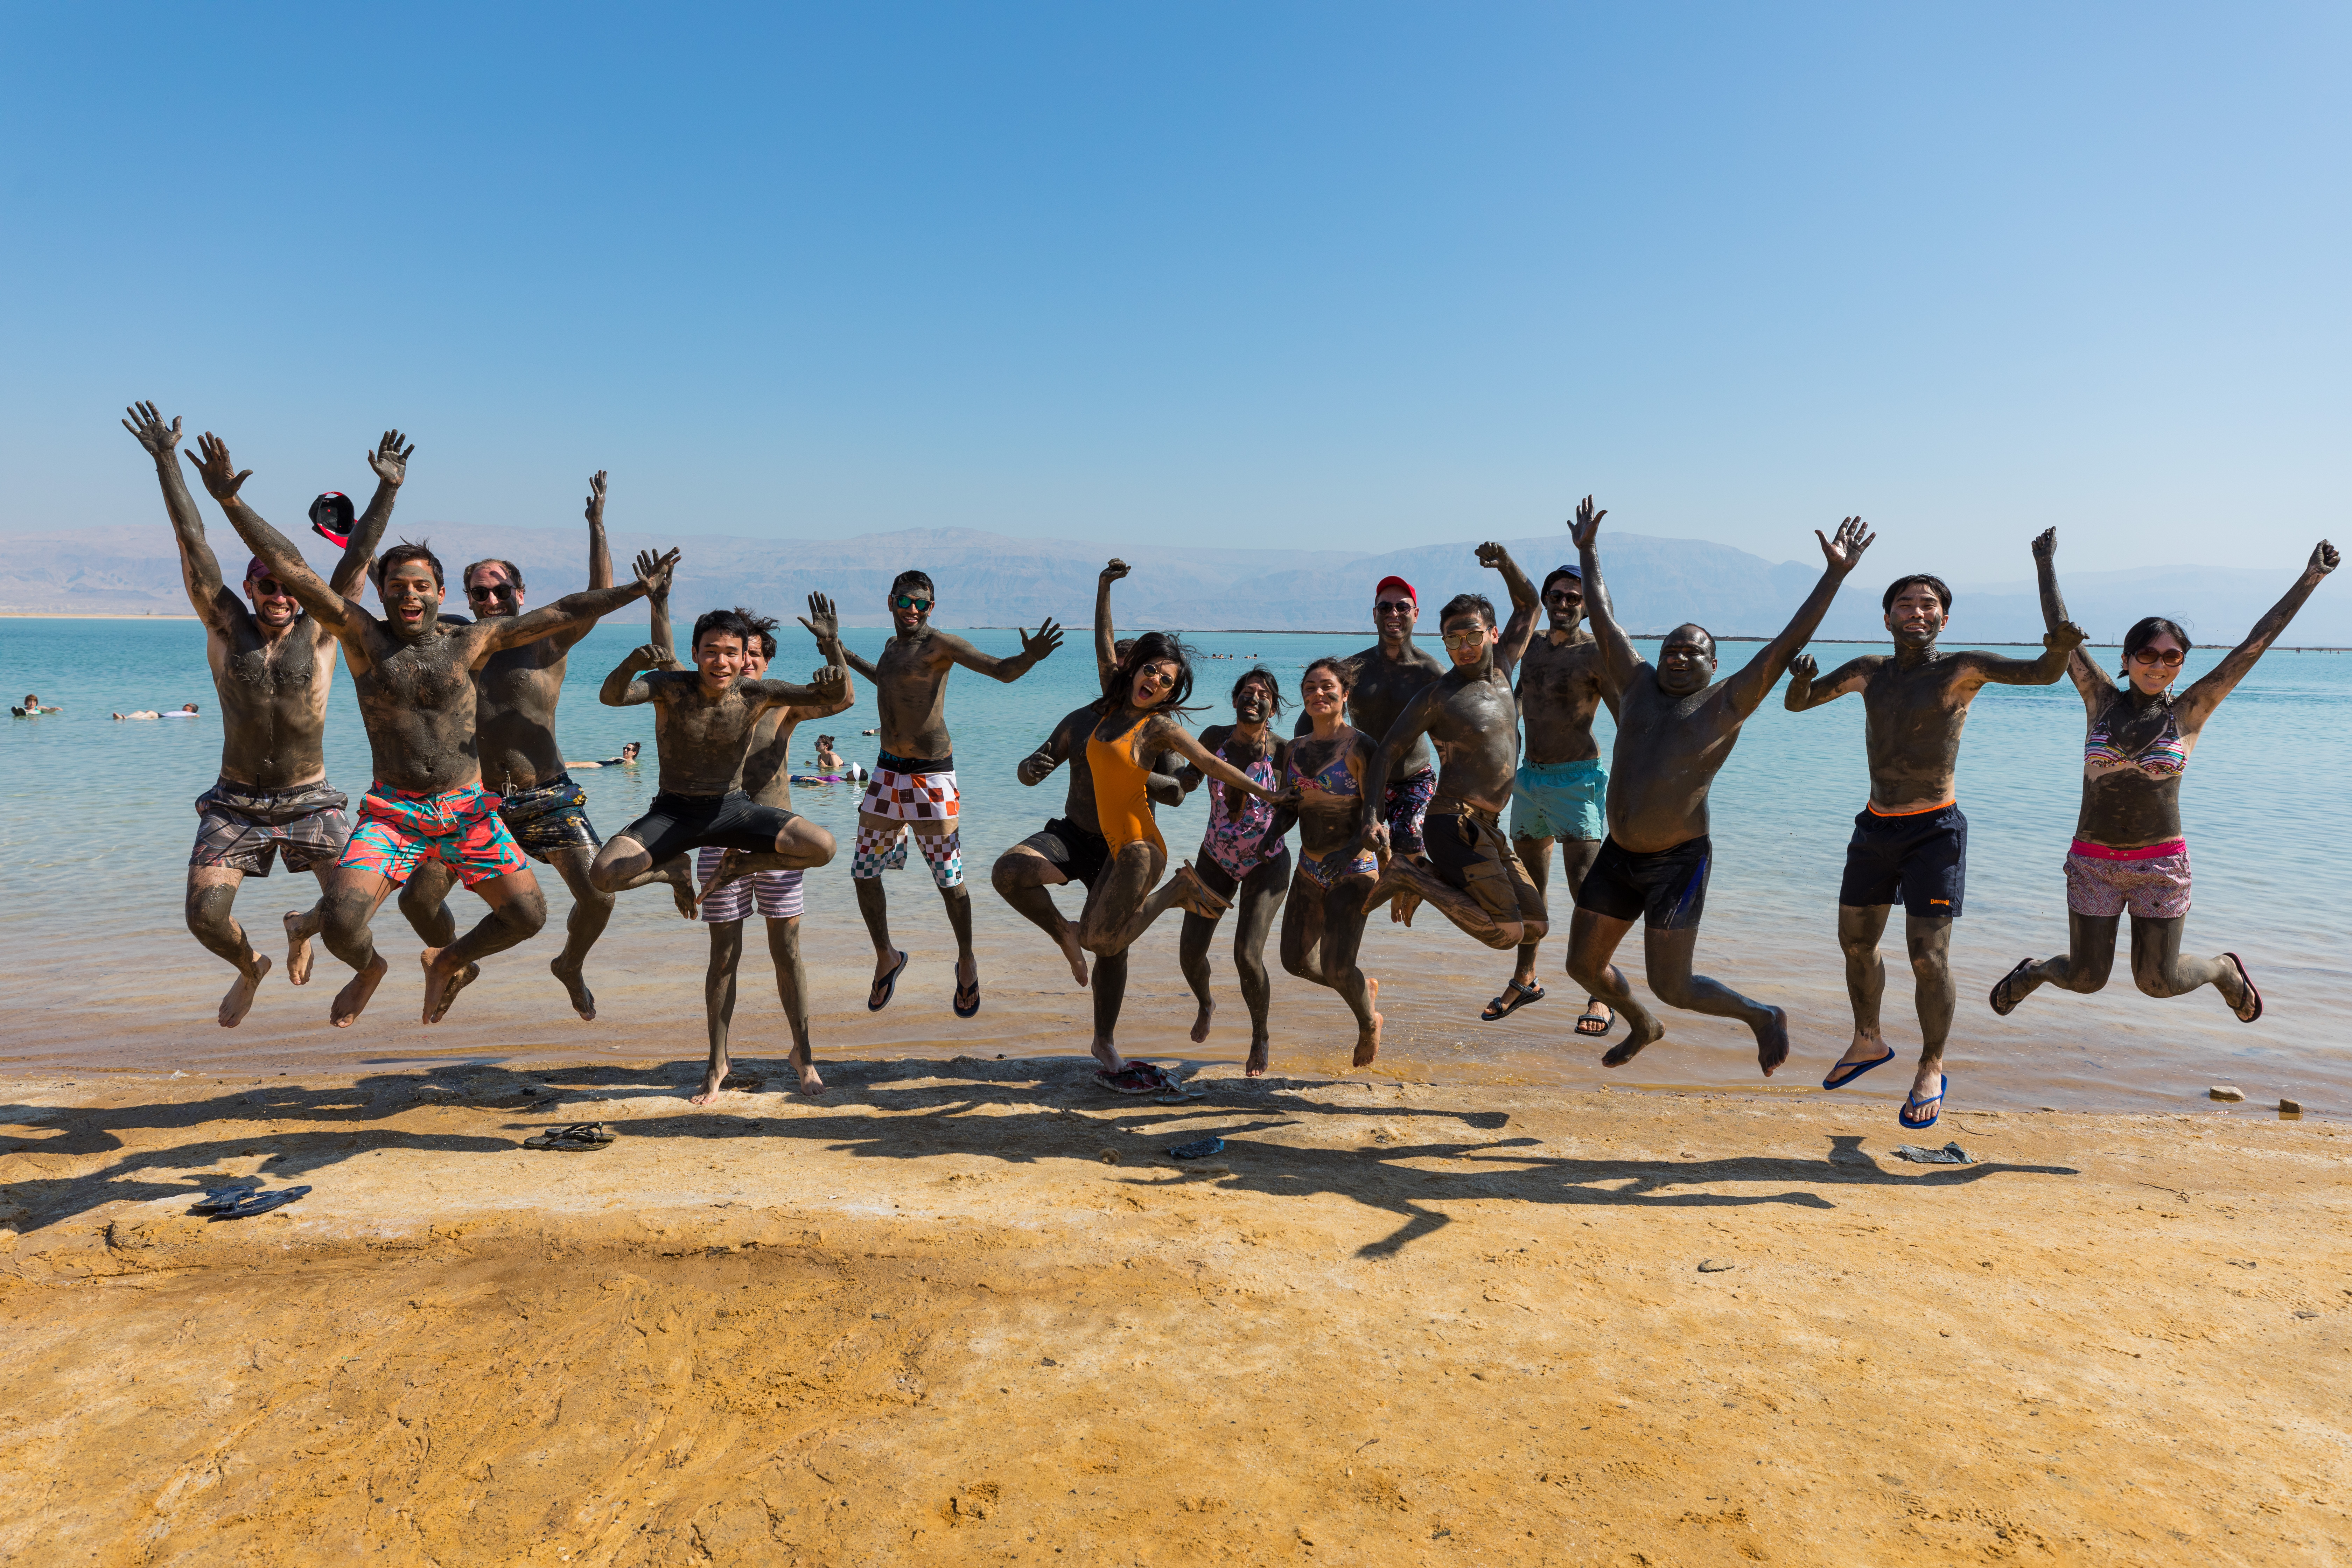 Reaping health benefits at the Dead Sea